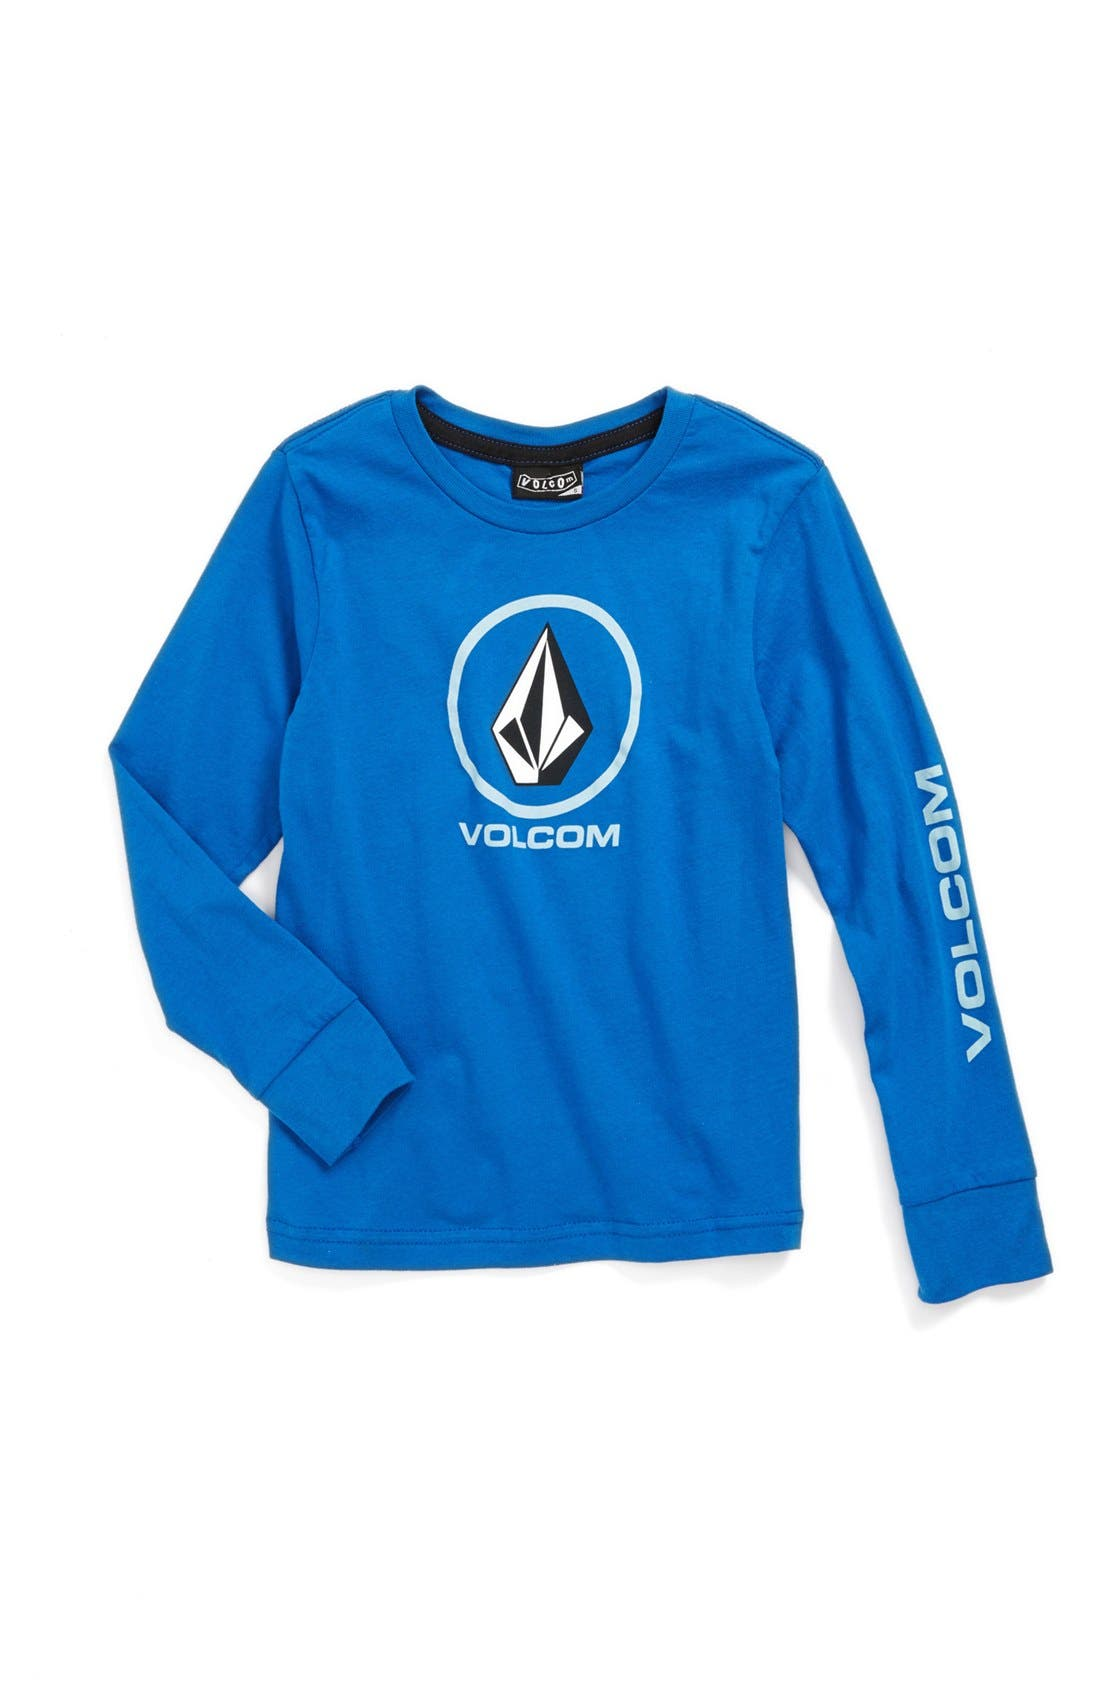 Alternate Image 1 Selected - Volcom 'Circle Staple' Long Sleeve T-Shirt (Big Boys)